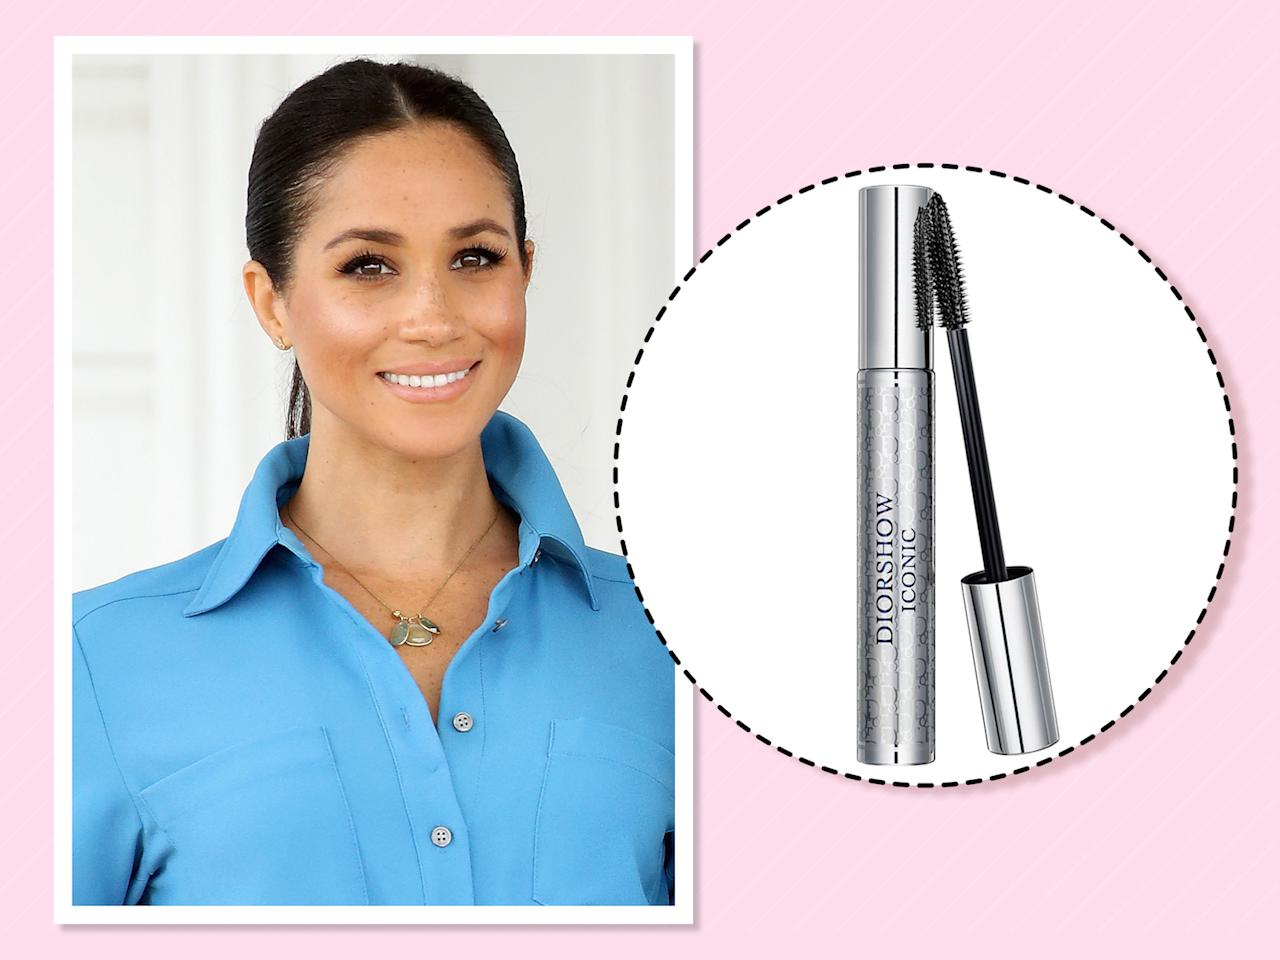 "<p><a rel=""nofollow"" href=""https://fave.co/2zPZHjq"">In 2014 she told <em>Allure</em></a>, ""My favorite mascara is Diorshow Iconic,"" which only leads us to believe this was Markle's beauty staple of choice for her 2018 wedding to Prince Harry and one she always keeps in her makeup bag. (Photo: Getty Images)<br /><strong><a rel=""nofollow"" href=""https://www.macys.com/shop/product/dior-diorshow-iconic-high-definition-lash-curler-mascara?ID=339195&CategoryID=30077&swatchColor=Black#fn=sp%3D1%26spc%3D16%26ruleId%3D78%26kws%3Ddior%20mascara%26searchPass%3DexactMultiMatch%26slotId%3D12"">Shop it</a>:</strong> $30, <a rel=""nofollow"" href=""https://www.macys.com/shop/product/dior-diorshow-iconic-high-definition-lash-curler-mascara?ID=339195&CategoryID=30077&swatchColor=Black#fn=sp%3D1%26spc%3D16%26ruleId%3D78%26kws%3Ddior%20mascara%26searchPass%3DexactMultiMatch%26slotId%3D12"">macys.com</a> </p>"